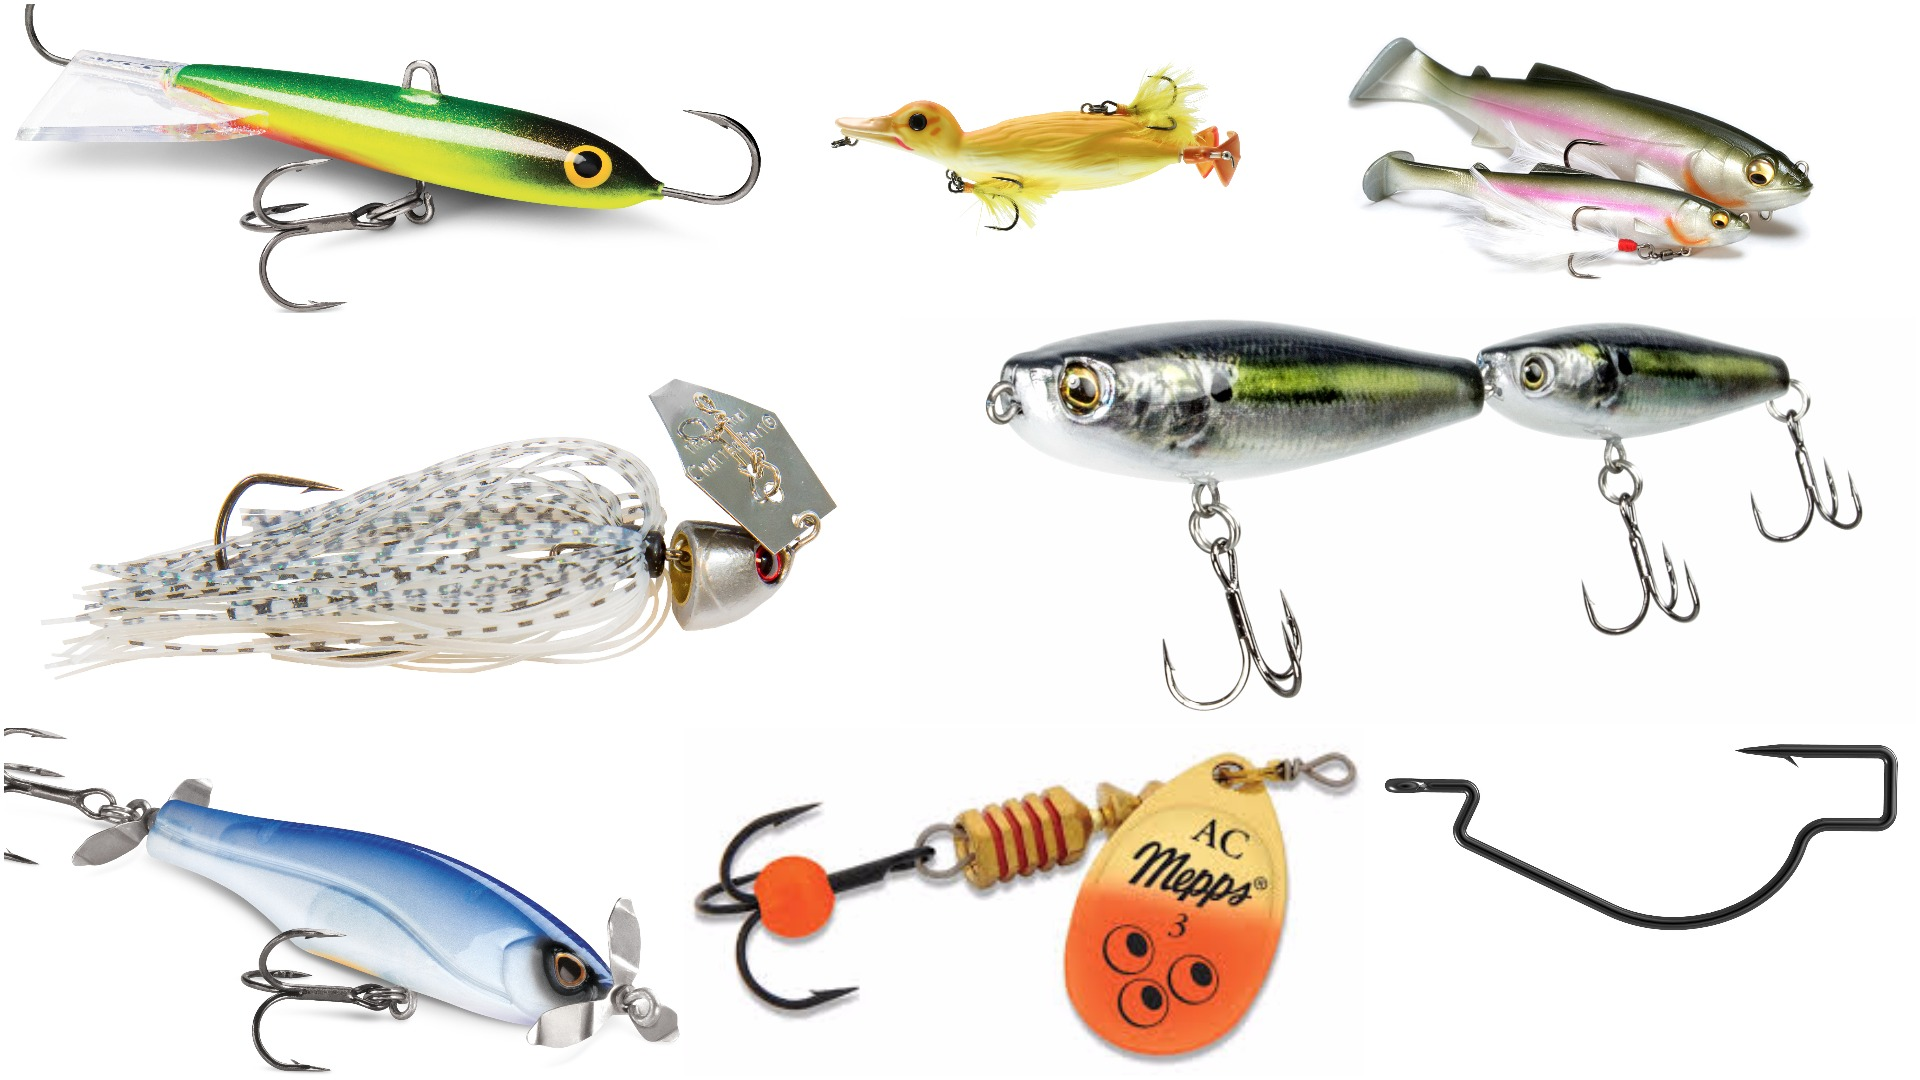 Tackle Week 2017: 10 must-have new lures for Canadian anglers